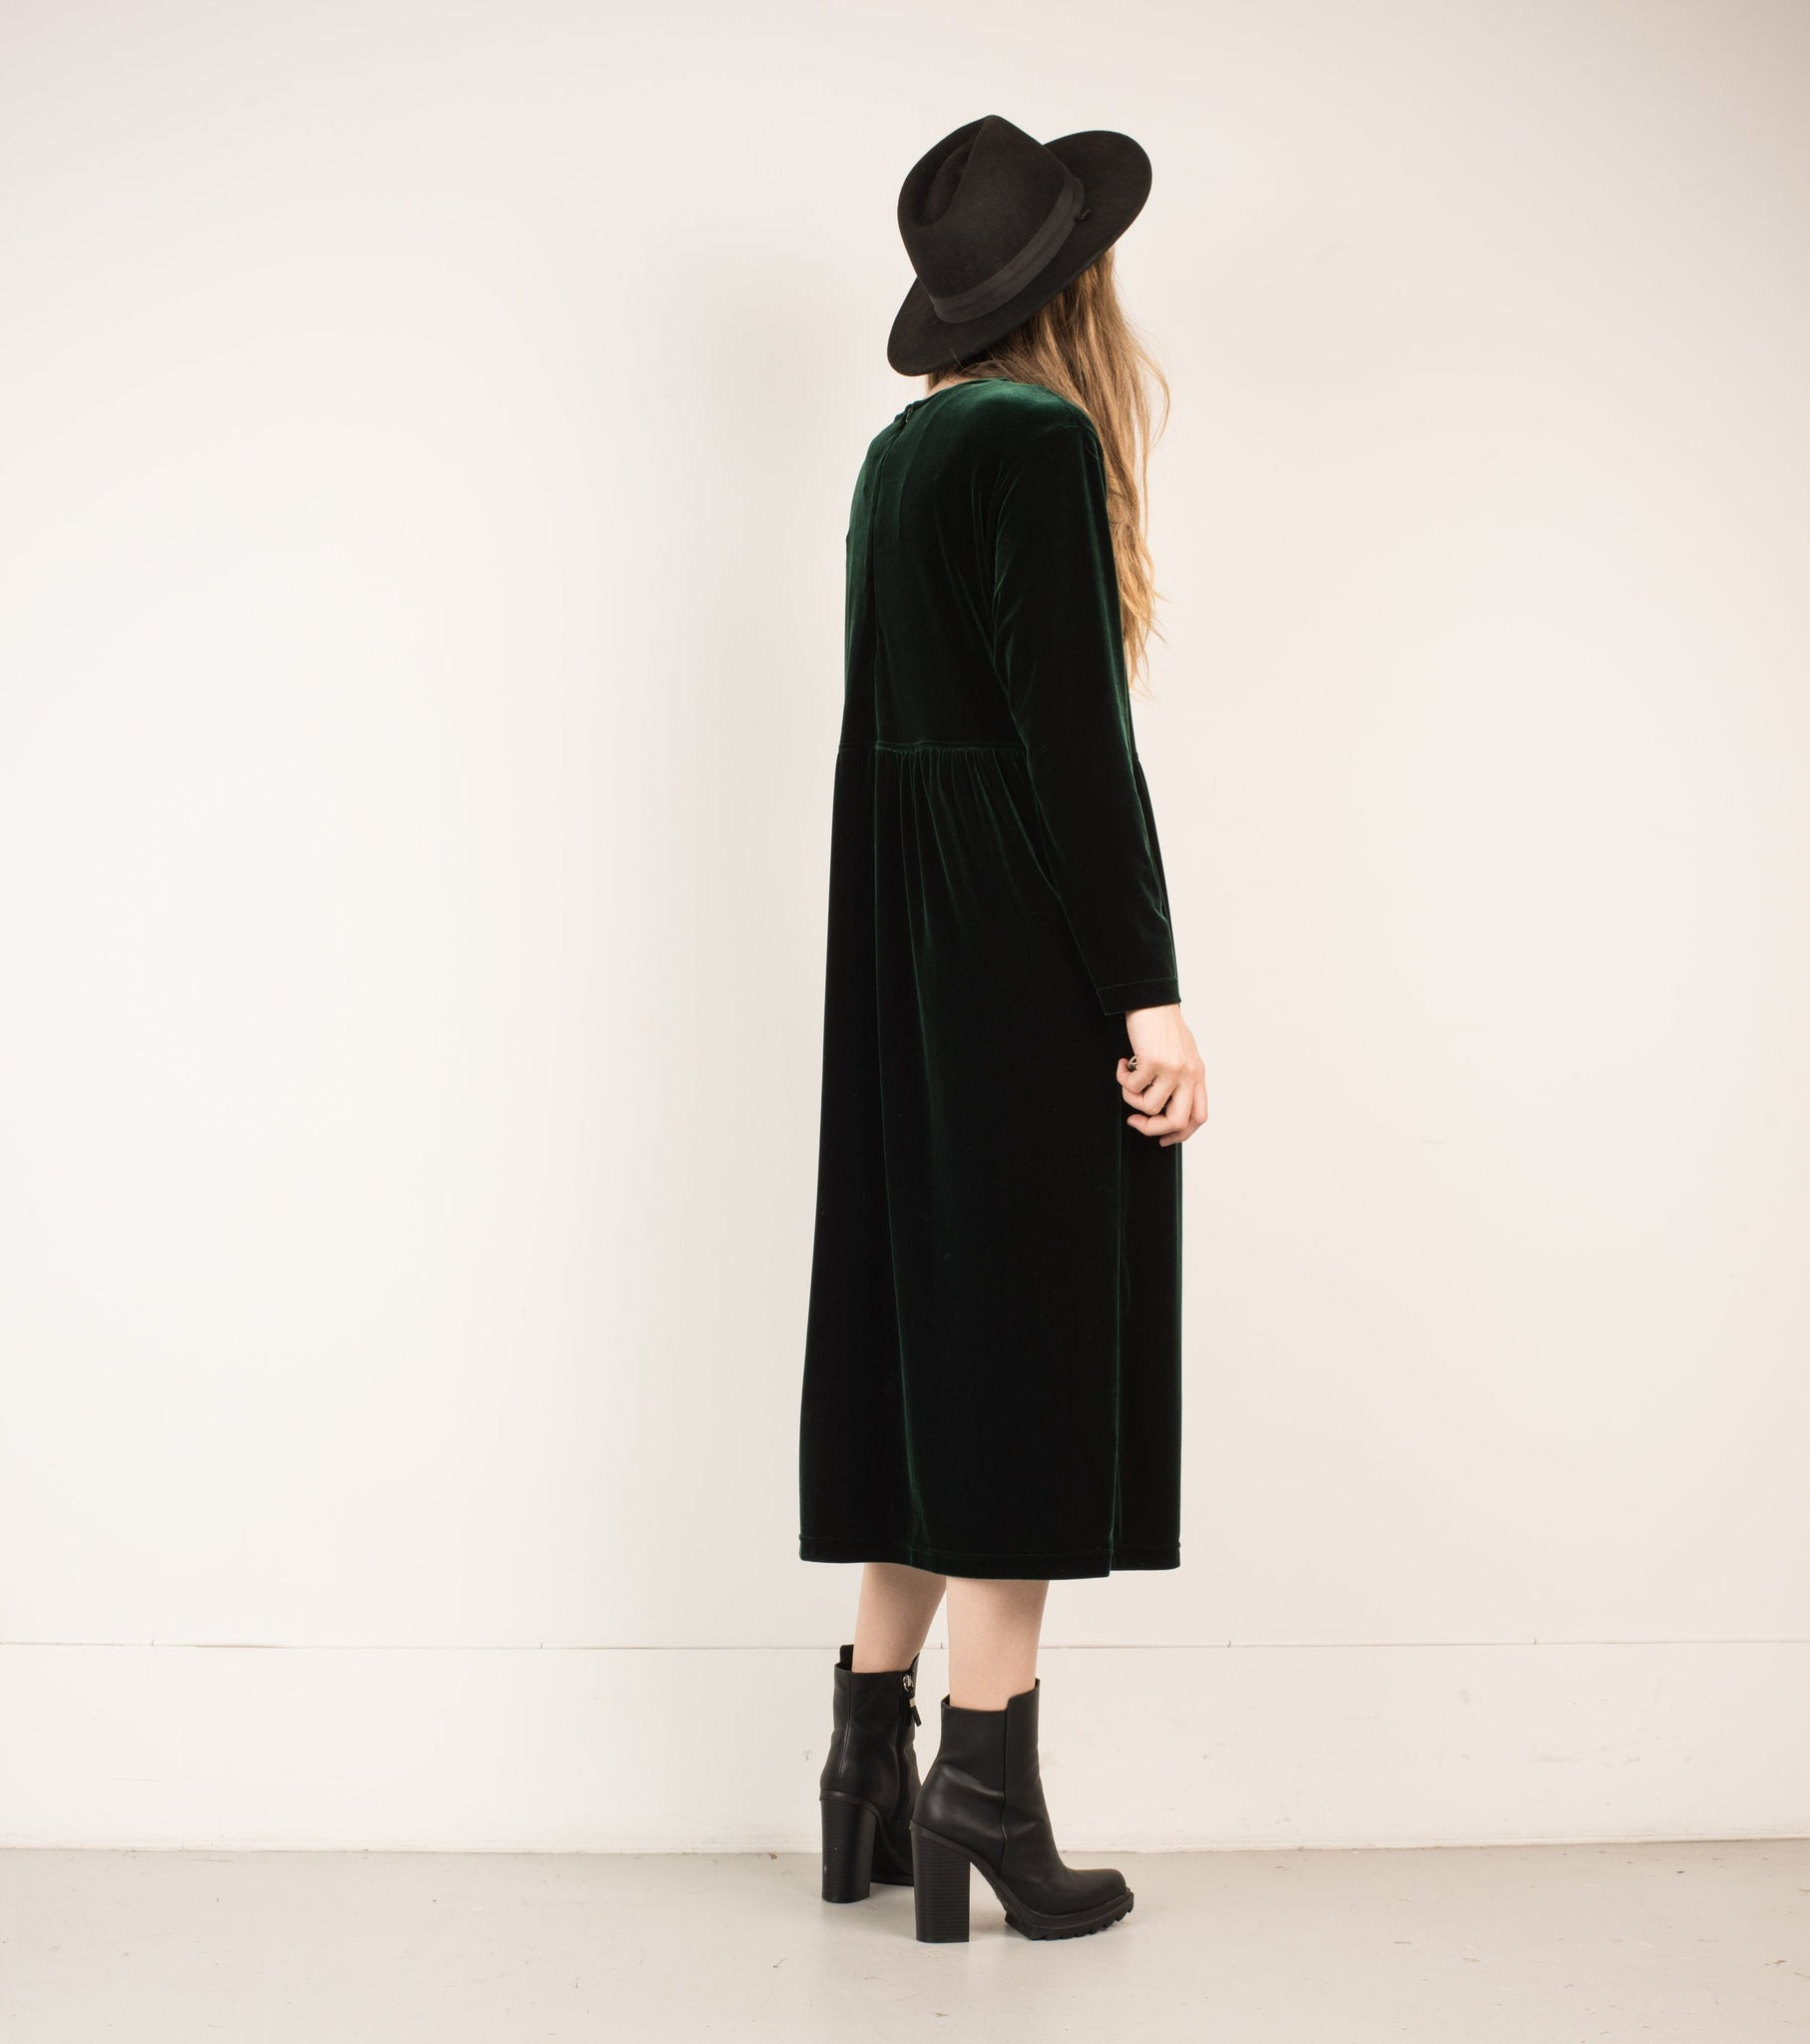 Vintage Forest Green Velvet Maxi Dress / S - Closed Caption